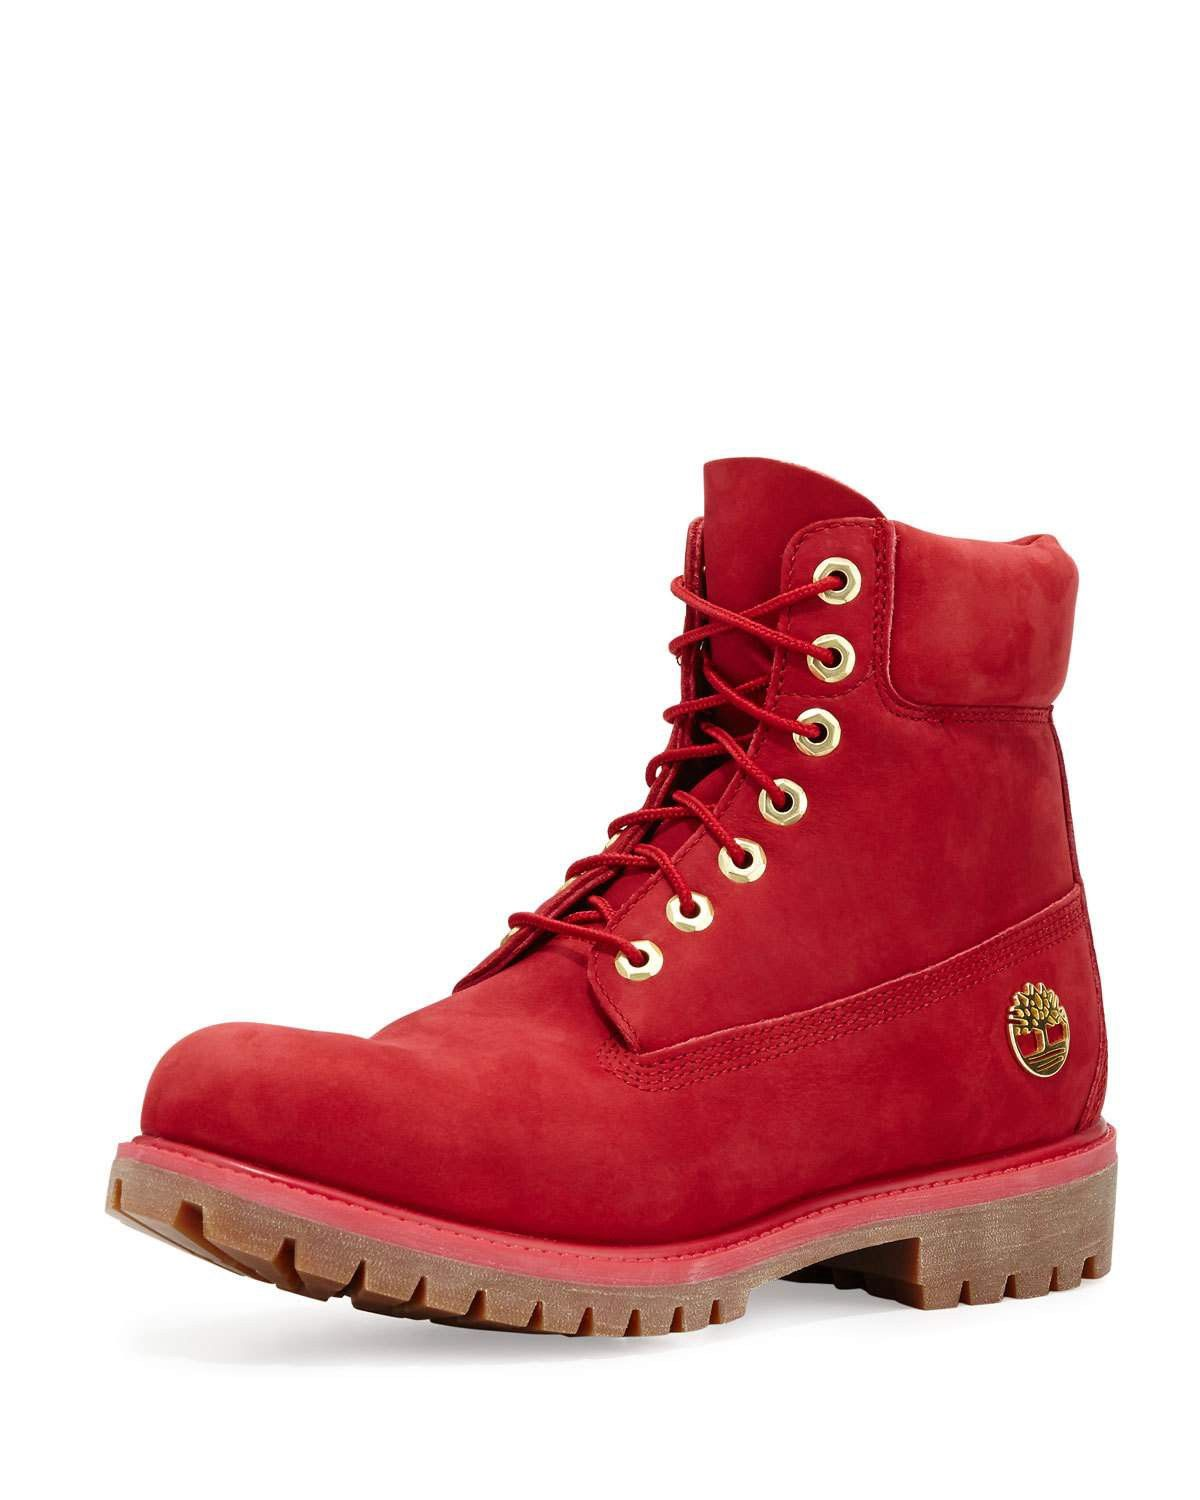 Timberland Red Lace Up Boot For Men